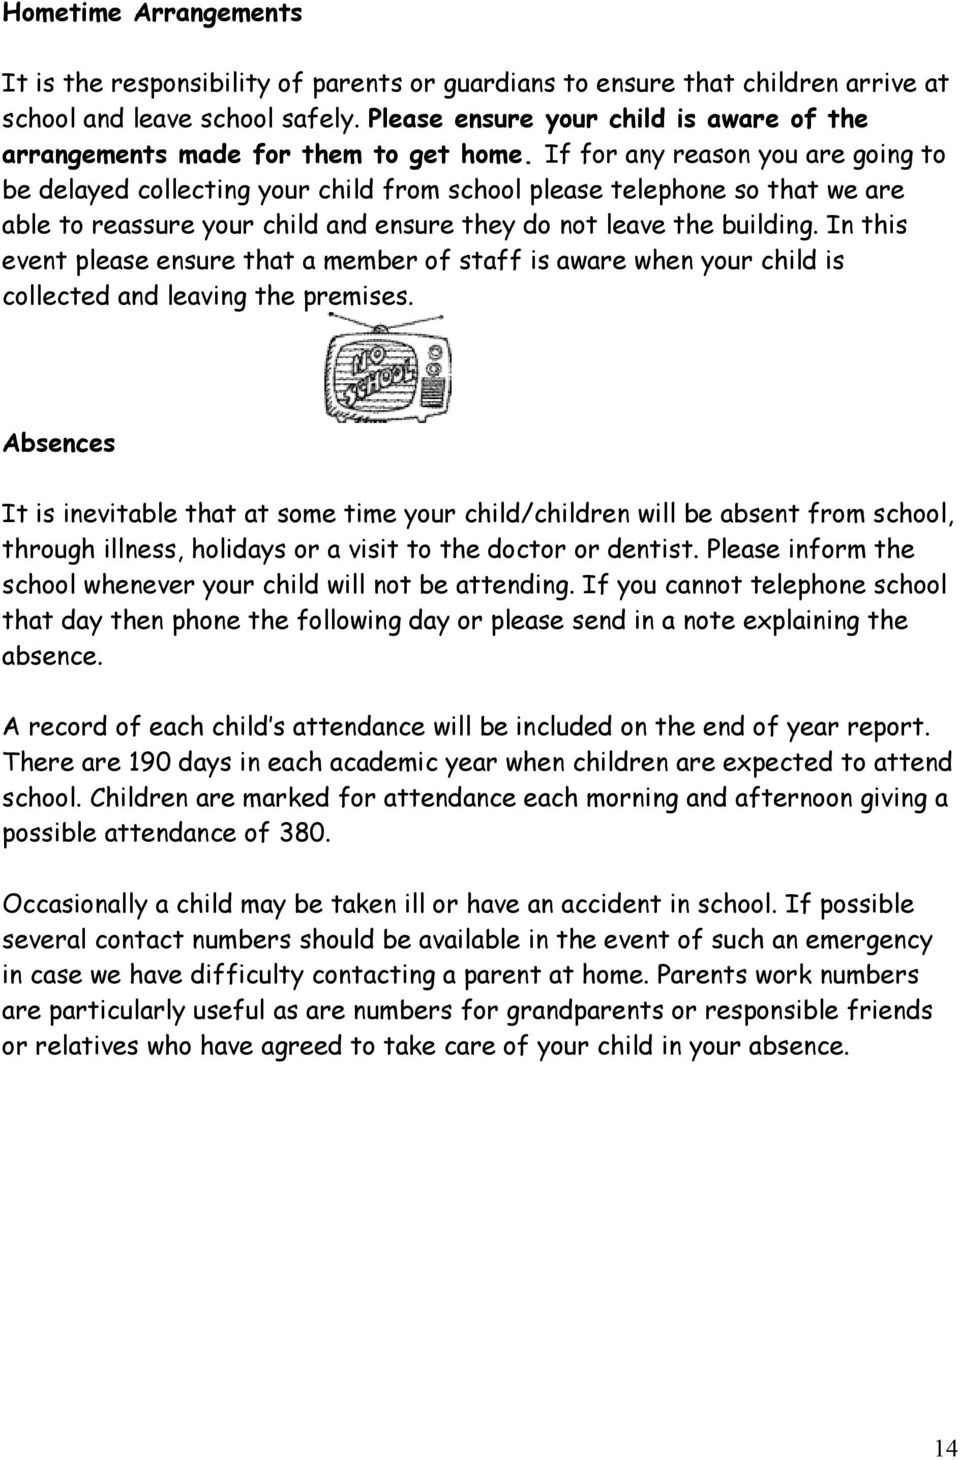 If for any reason you are going to be delayed collecting your child from school please telephone so that we are able to reassure your child and ensure they do not leave the building.